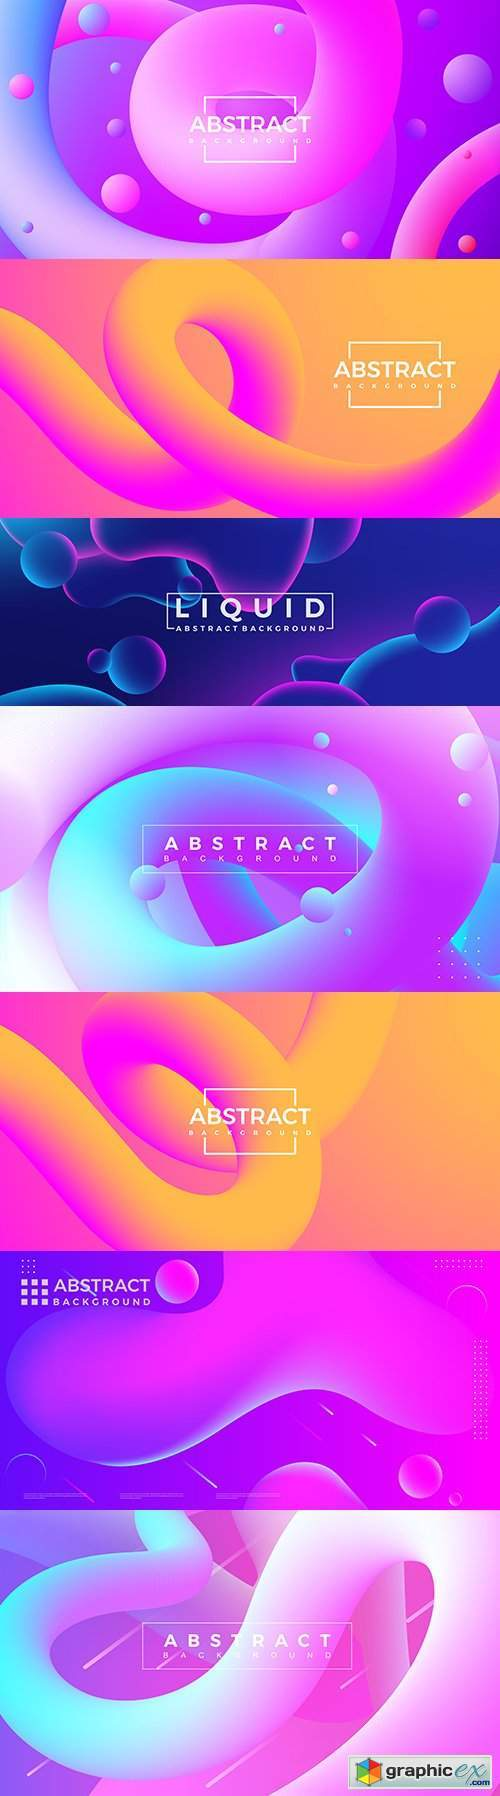 Abstract 3d curve background gradient shape line